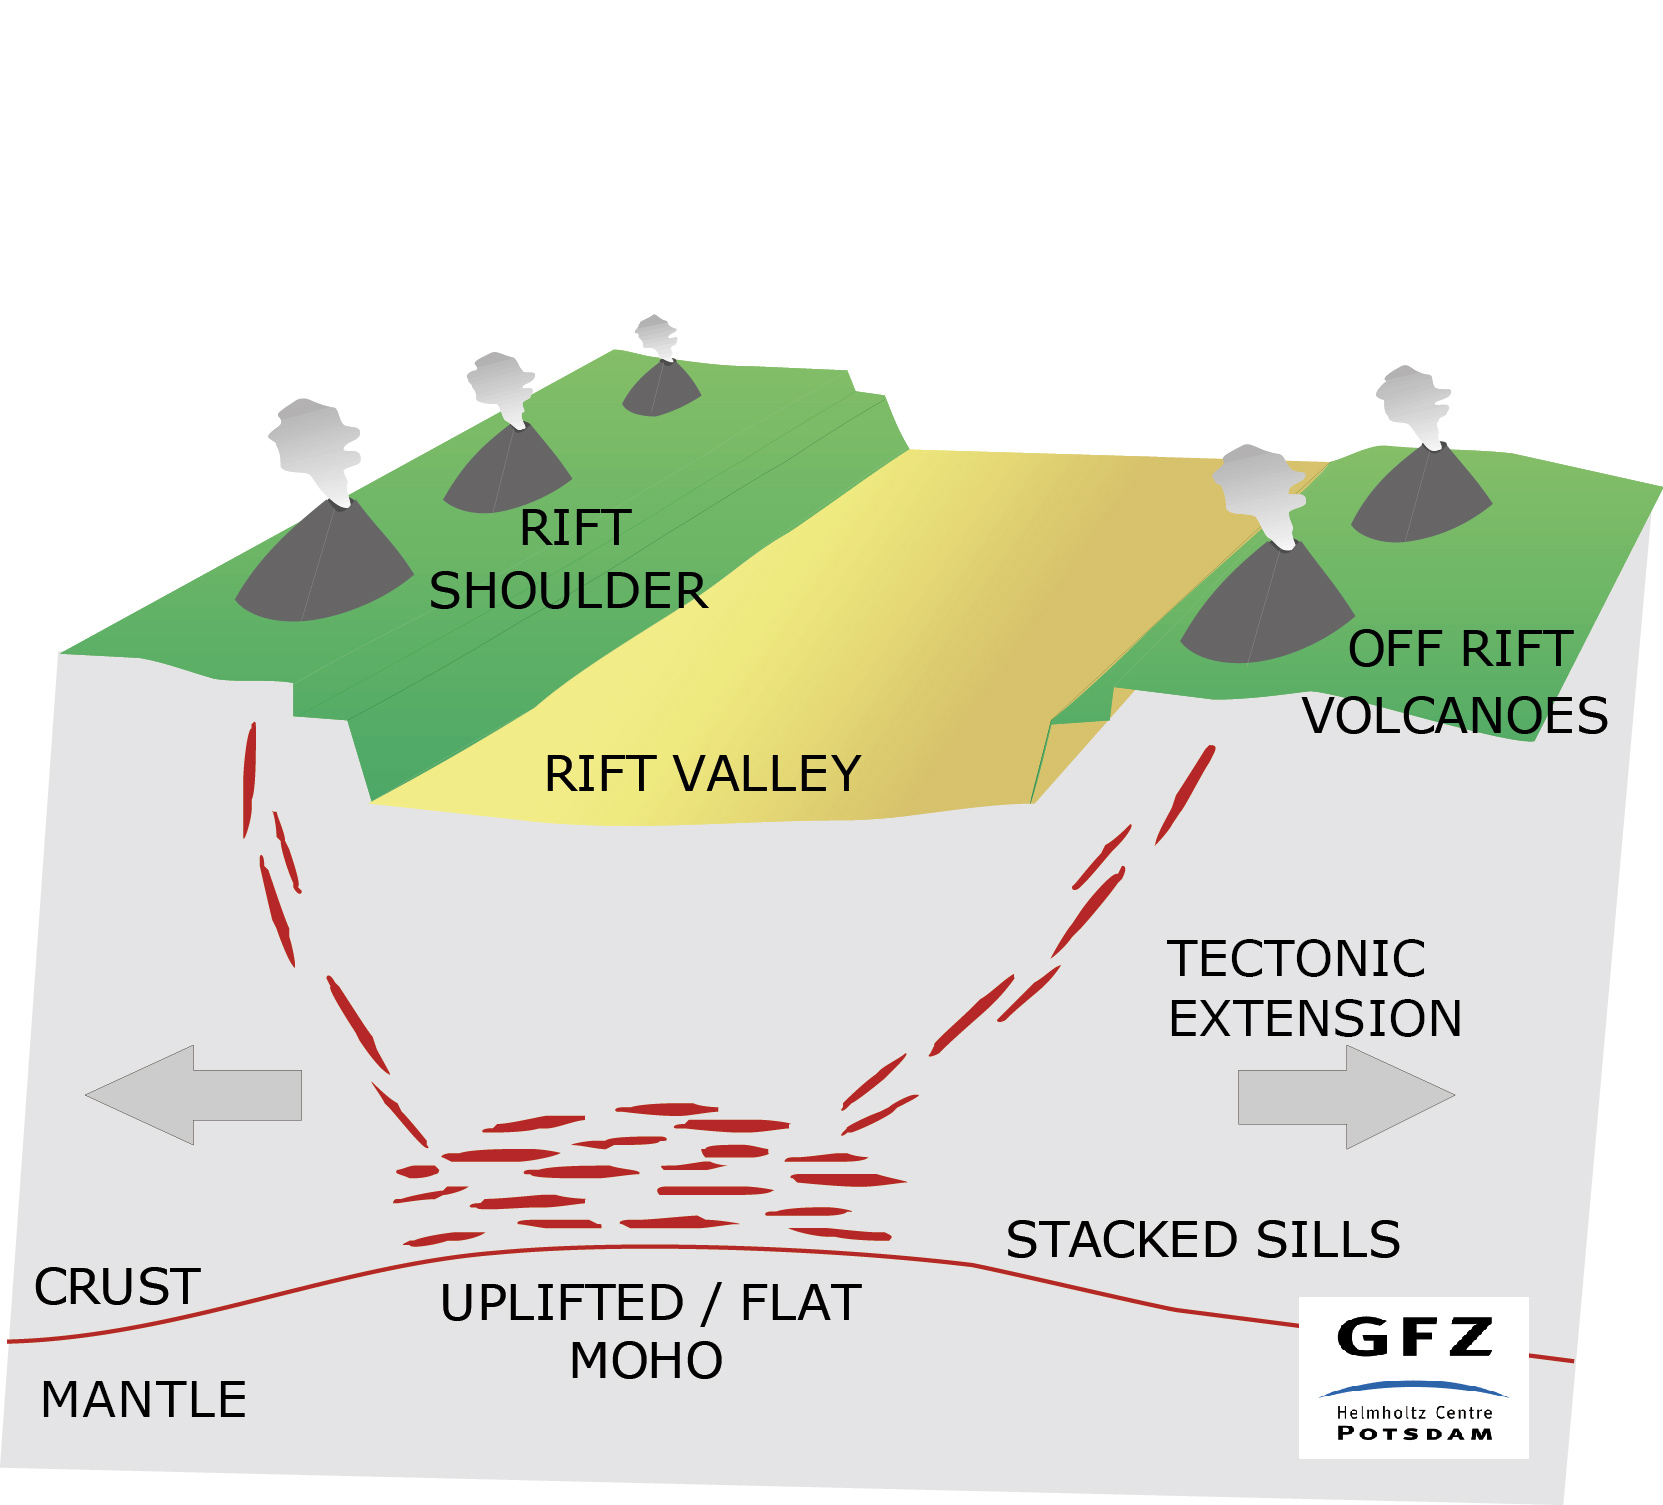 Rift volcanoes explained schematic diagram illustrating the formation of off rift volcanoes credit r milkereit gfz pooptronica